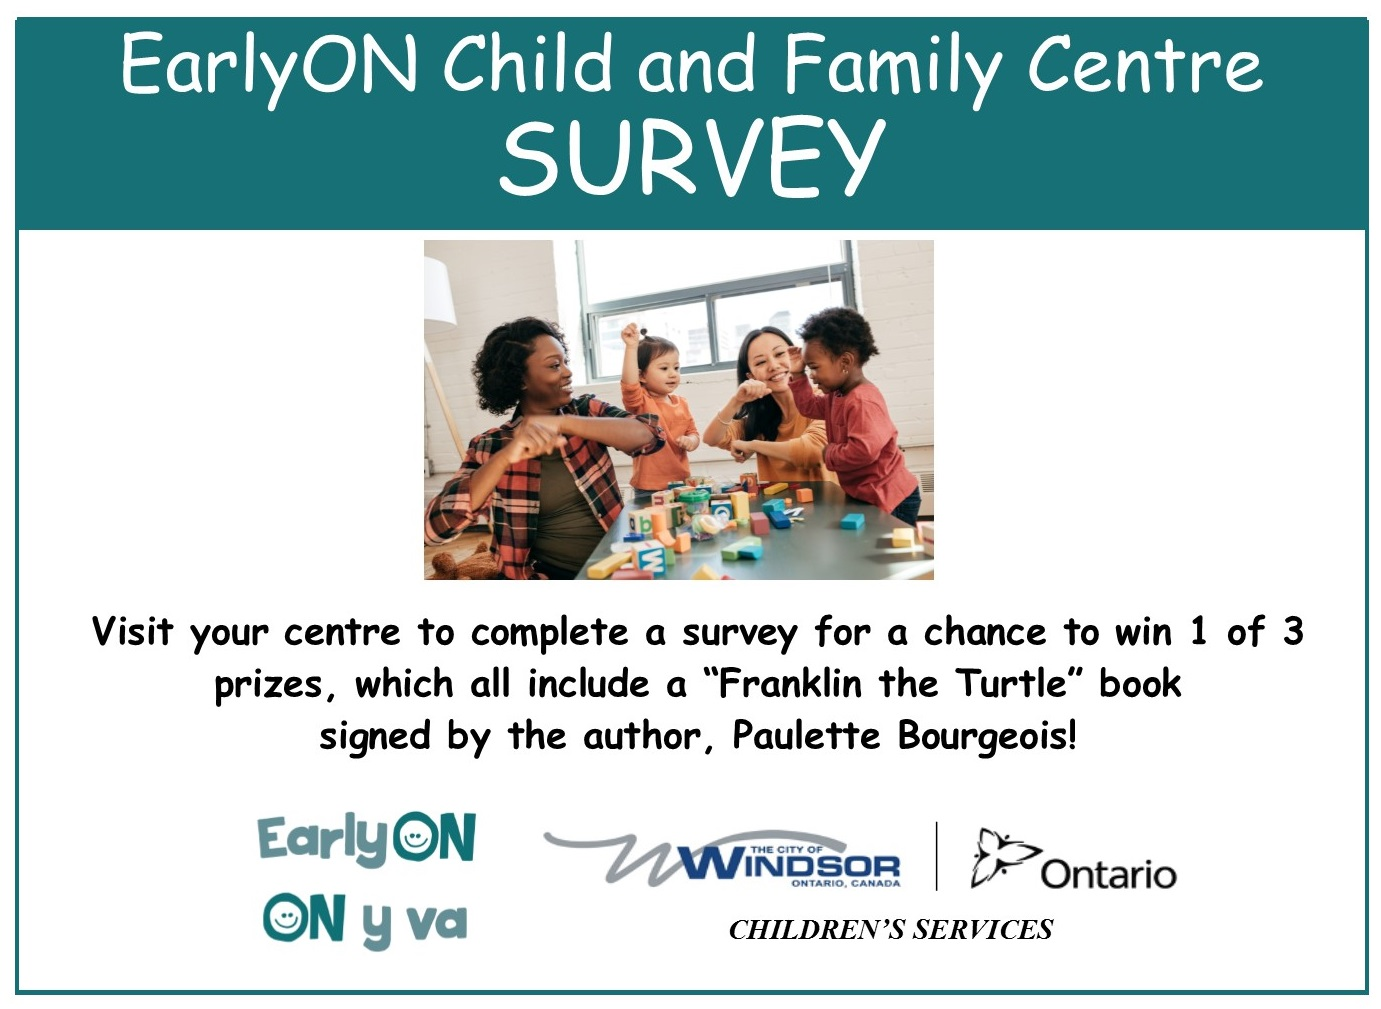 EarlyON Child and Family Centre survey promo